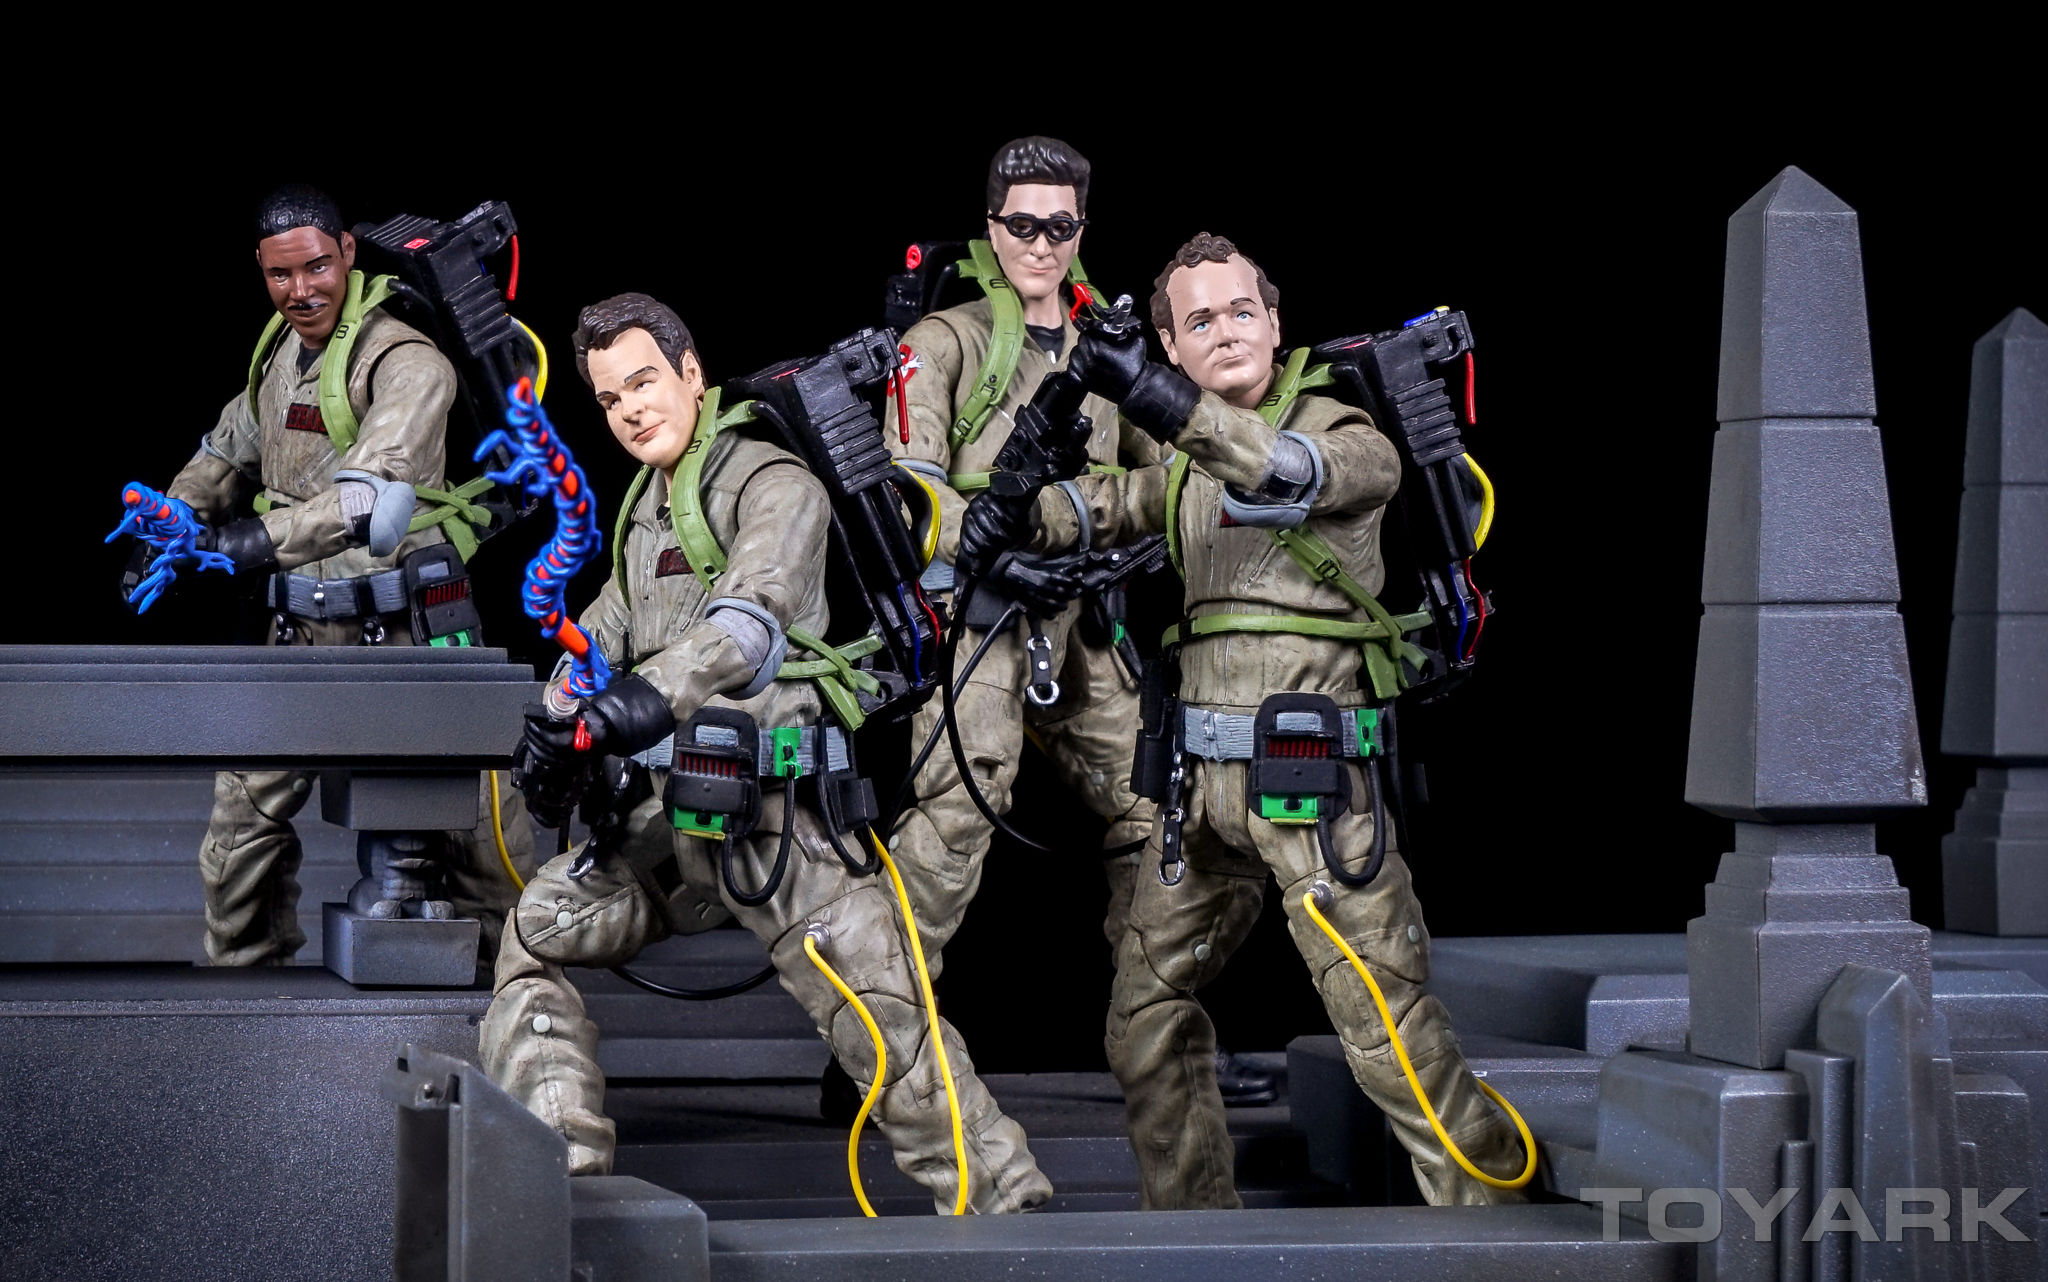 Ghostbusters Select Series 4 Toyark Photo Shoot The